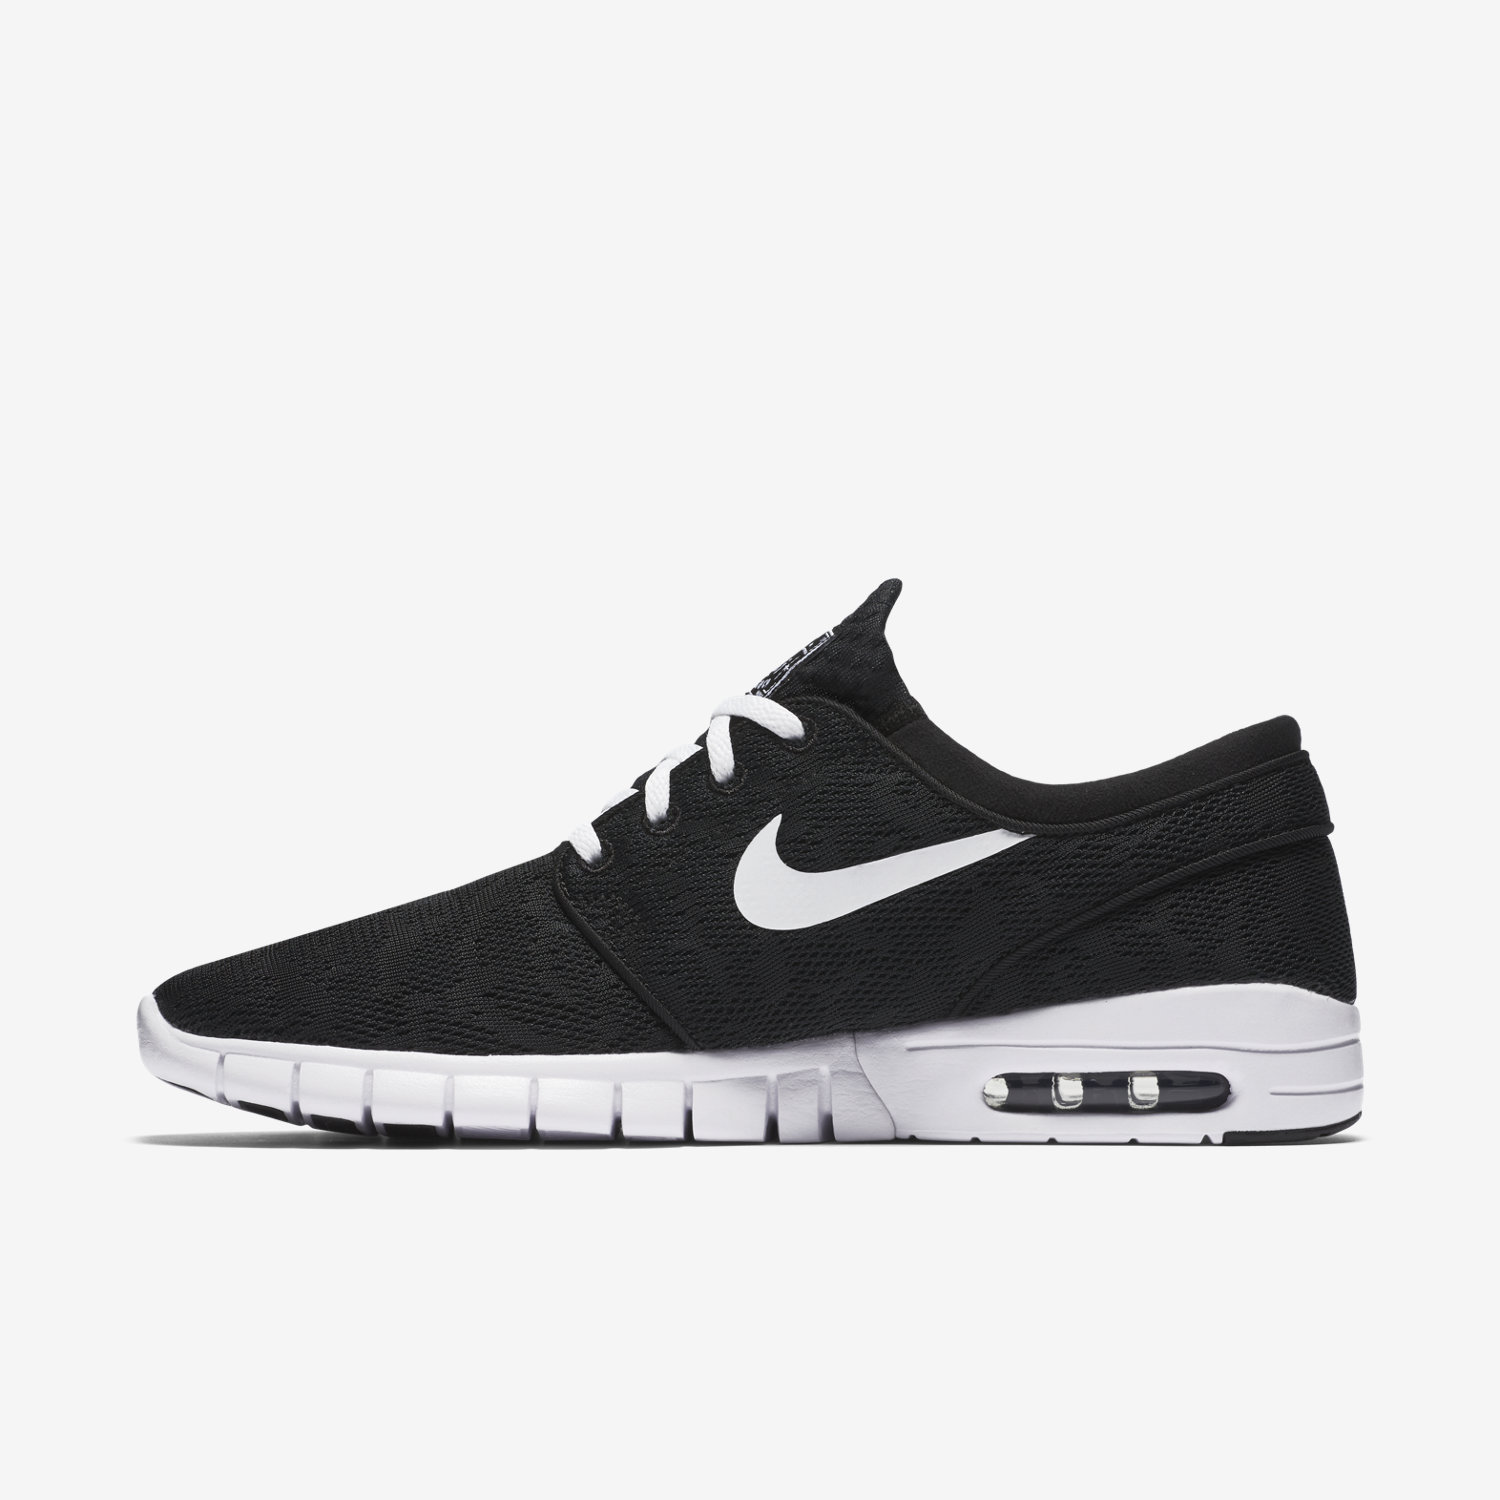 nike air max janoski. Black Bedroom Furniture Sets. Home Design Ideas